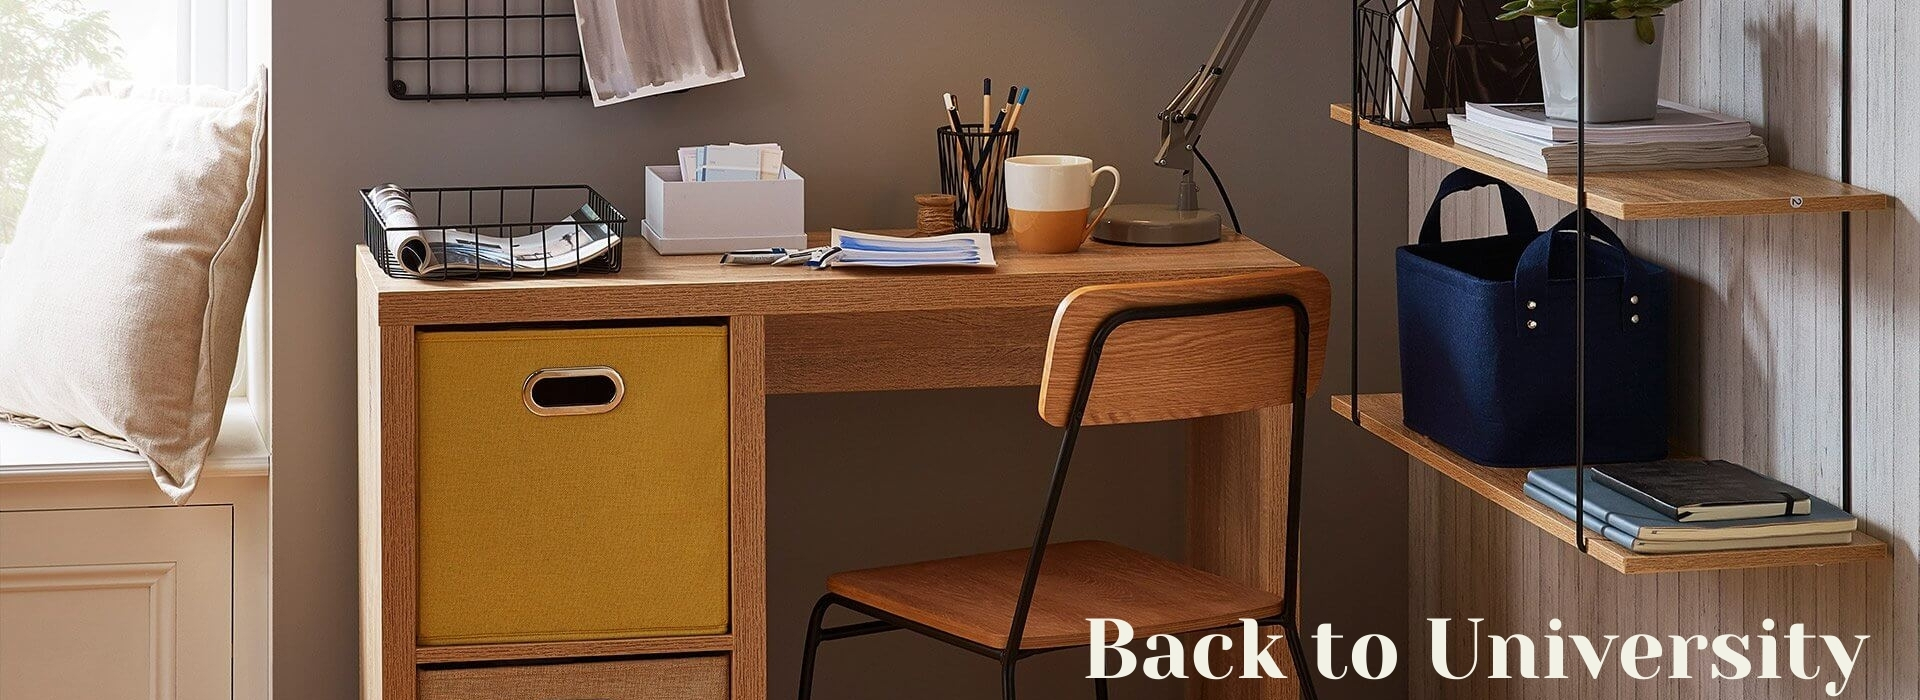 Back to University - Student desk in a room